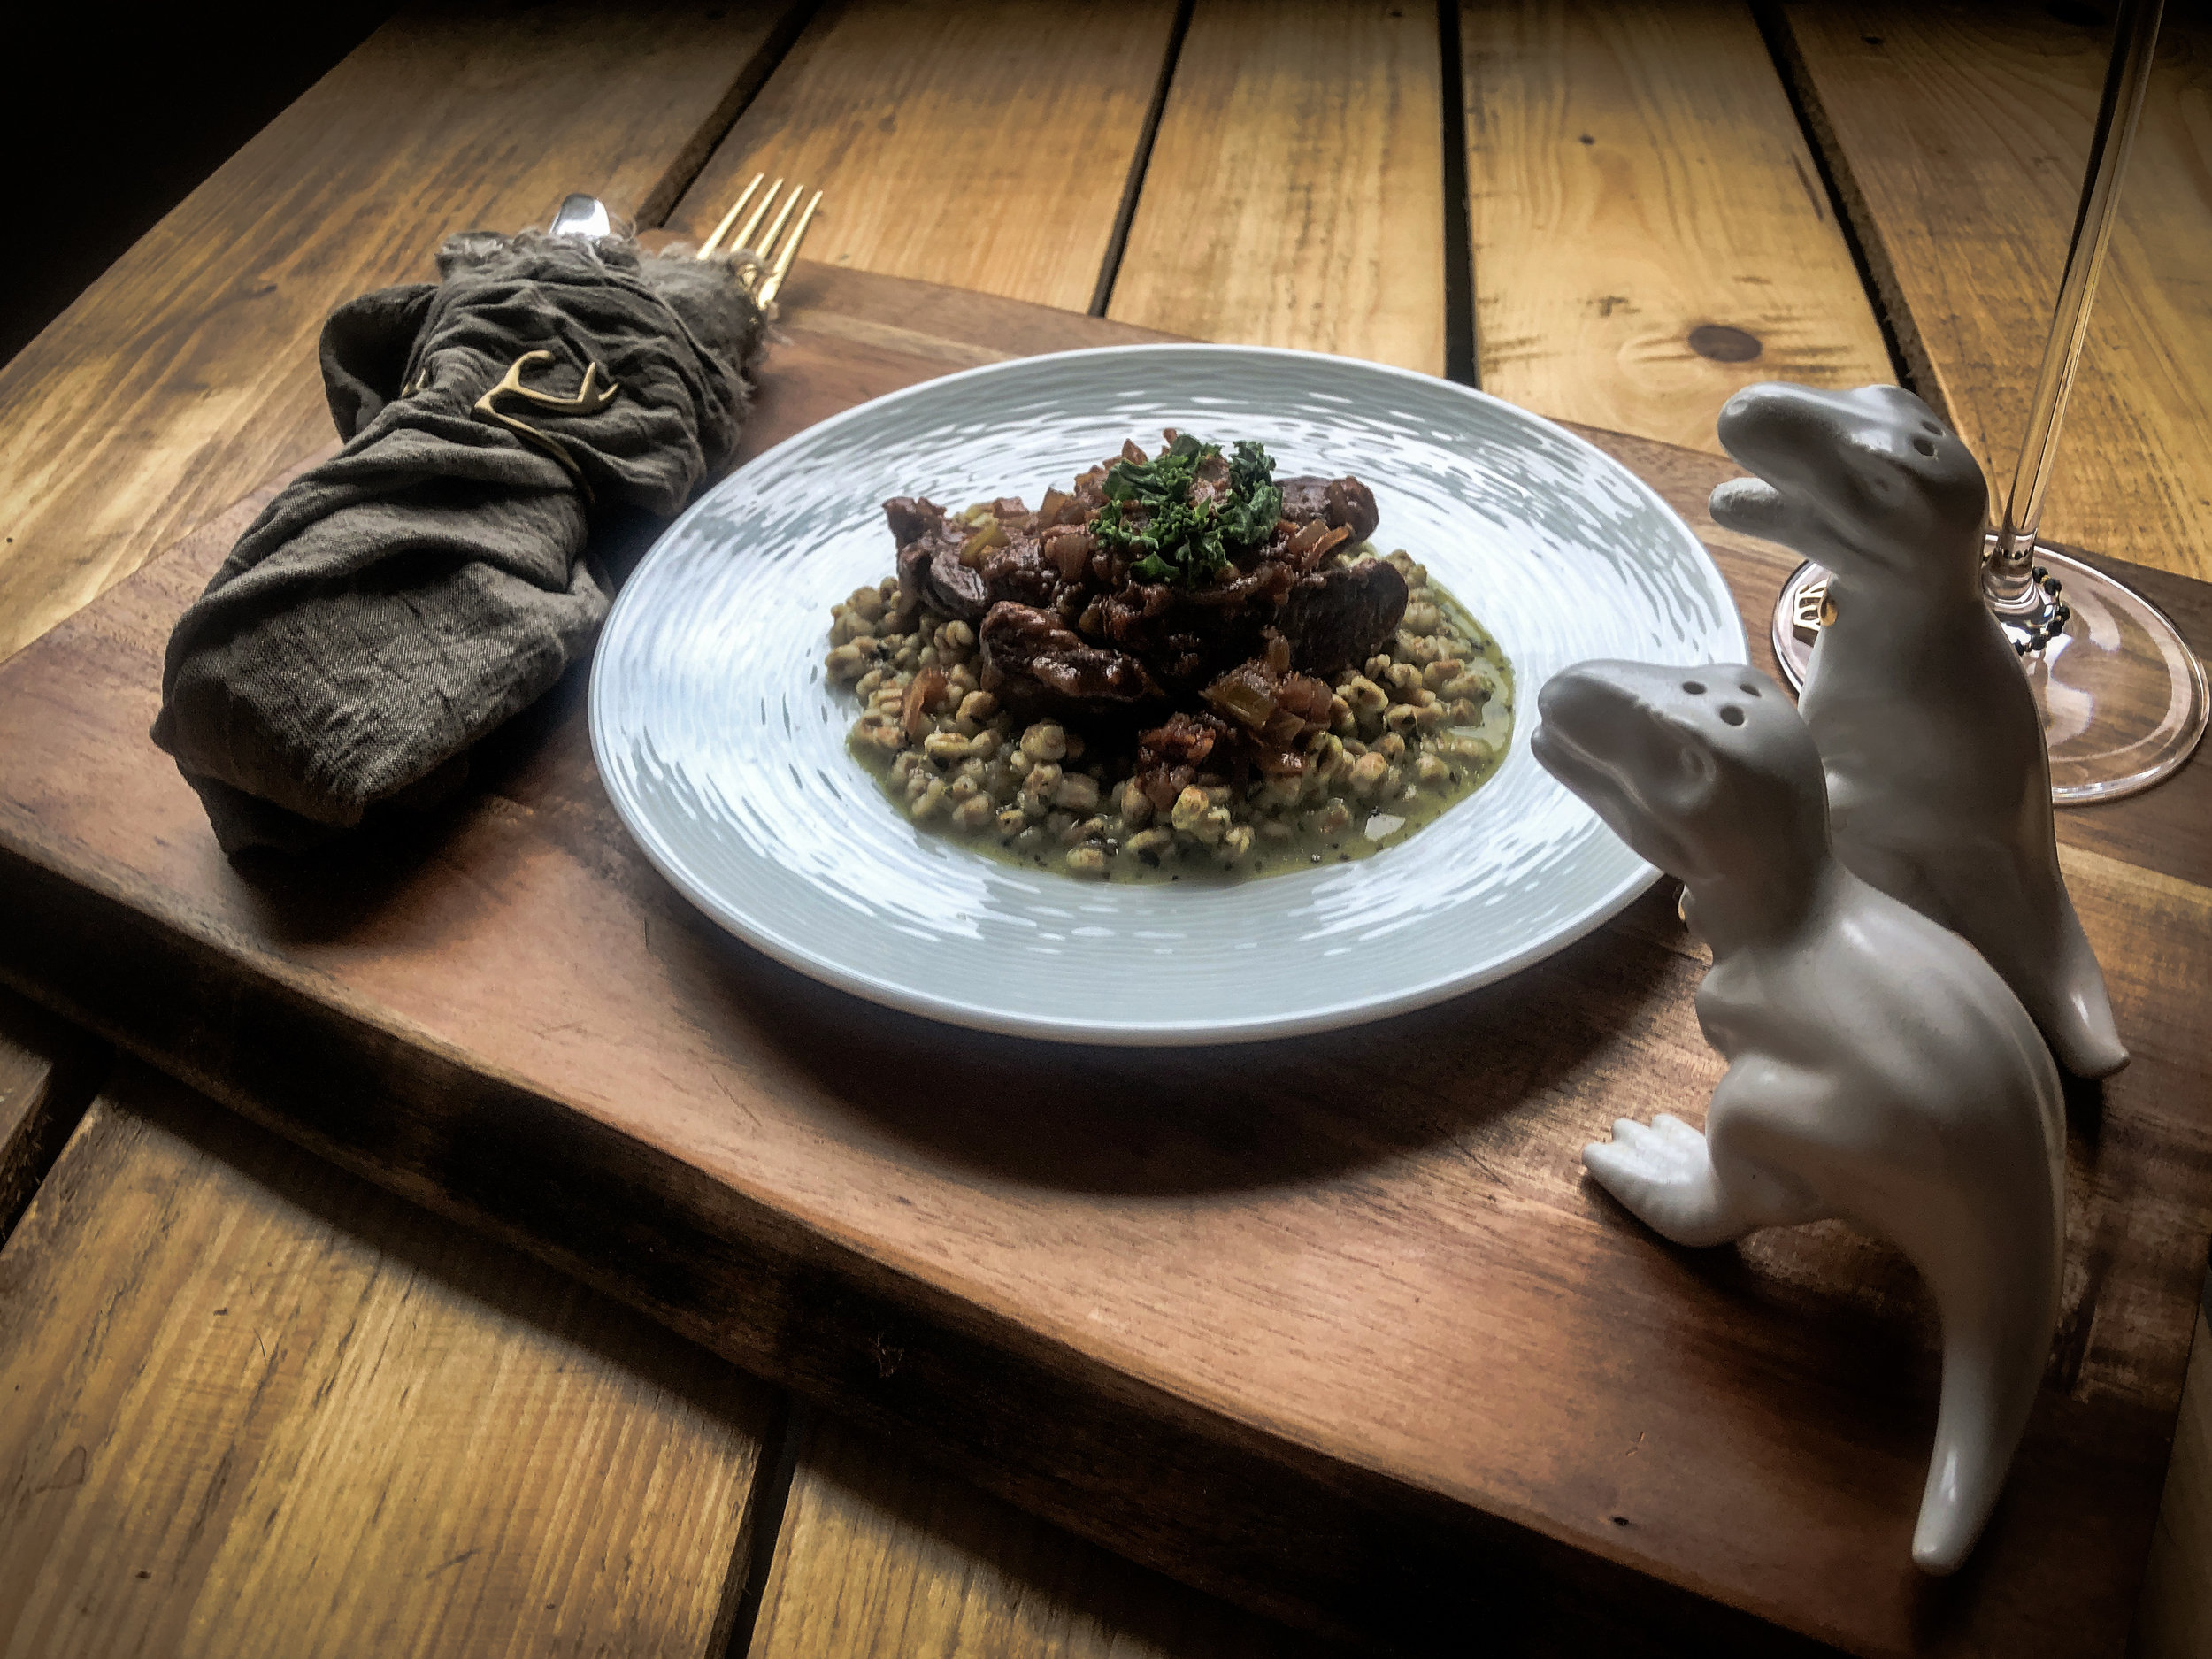 Wine braised venison heart served over pesto spelt, garnished with kale and paired with a Malbec. Salt and pepper to taste (via dinosaur shakers).